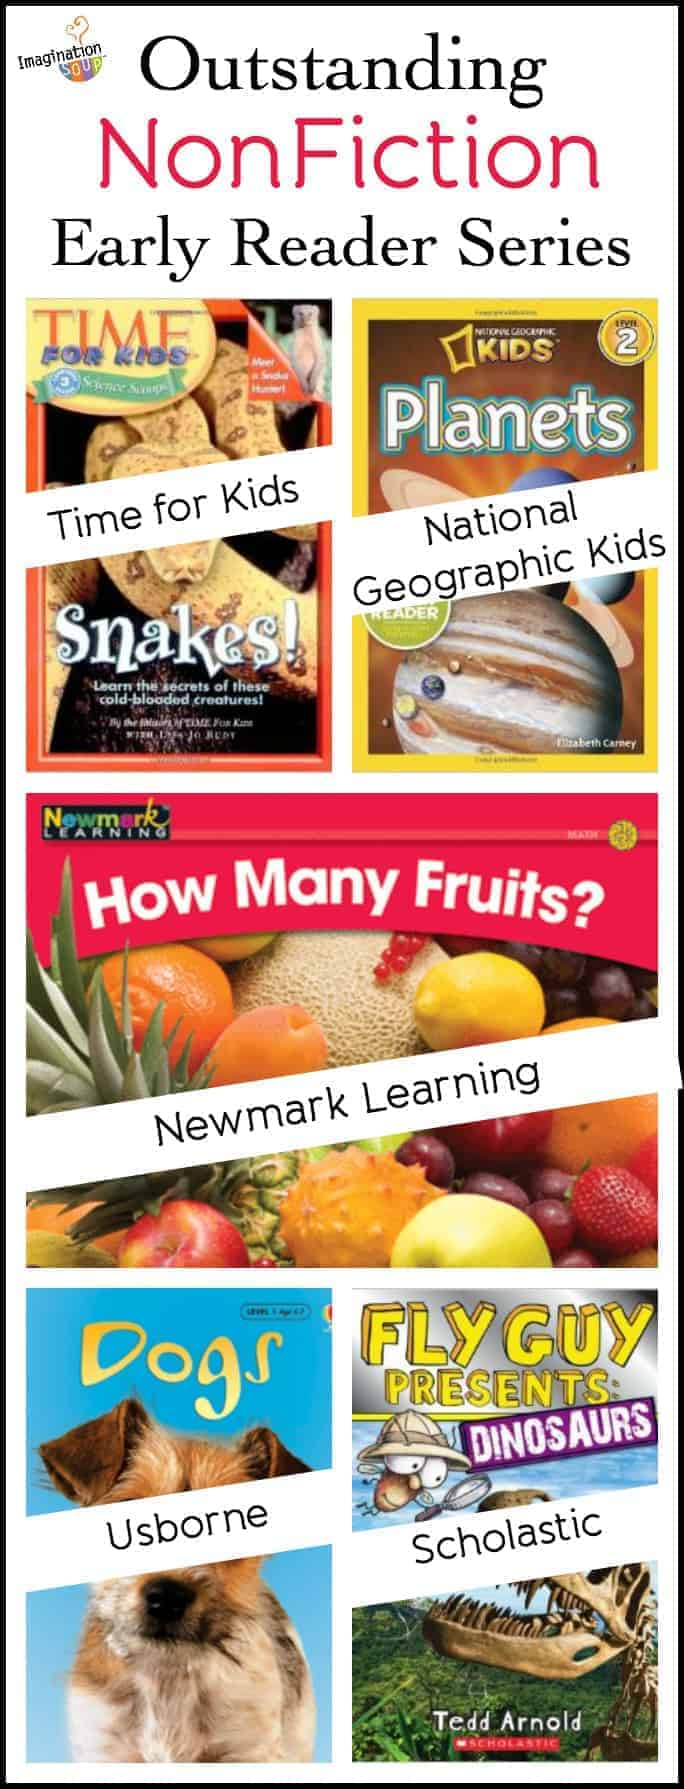 Outstanding NonFiction Early Reader Series